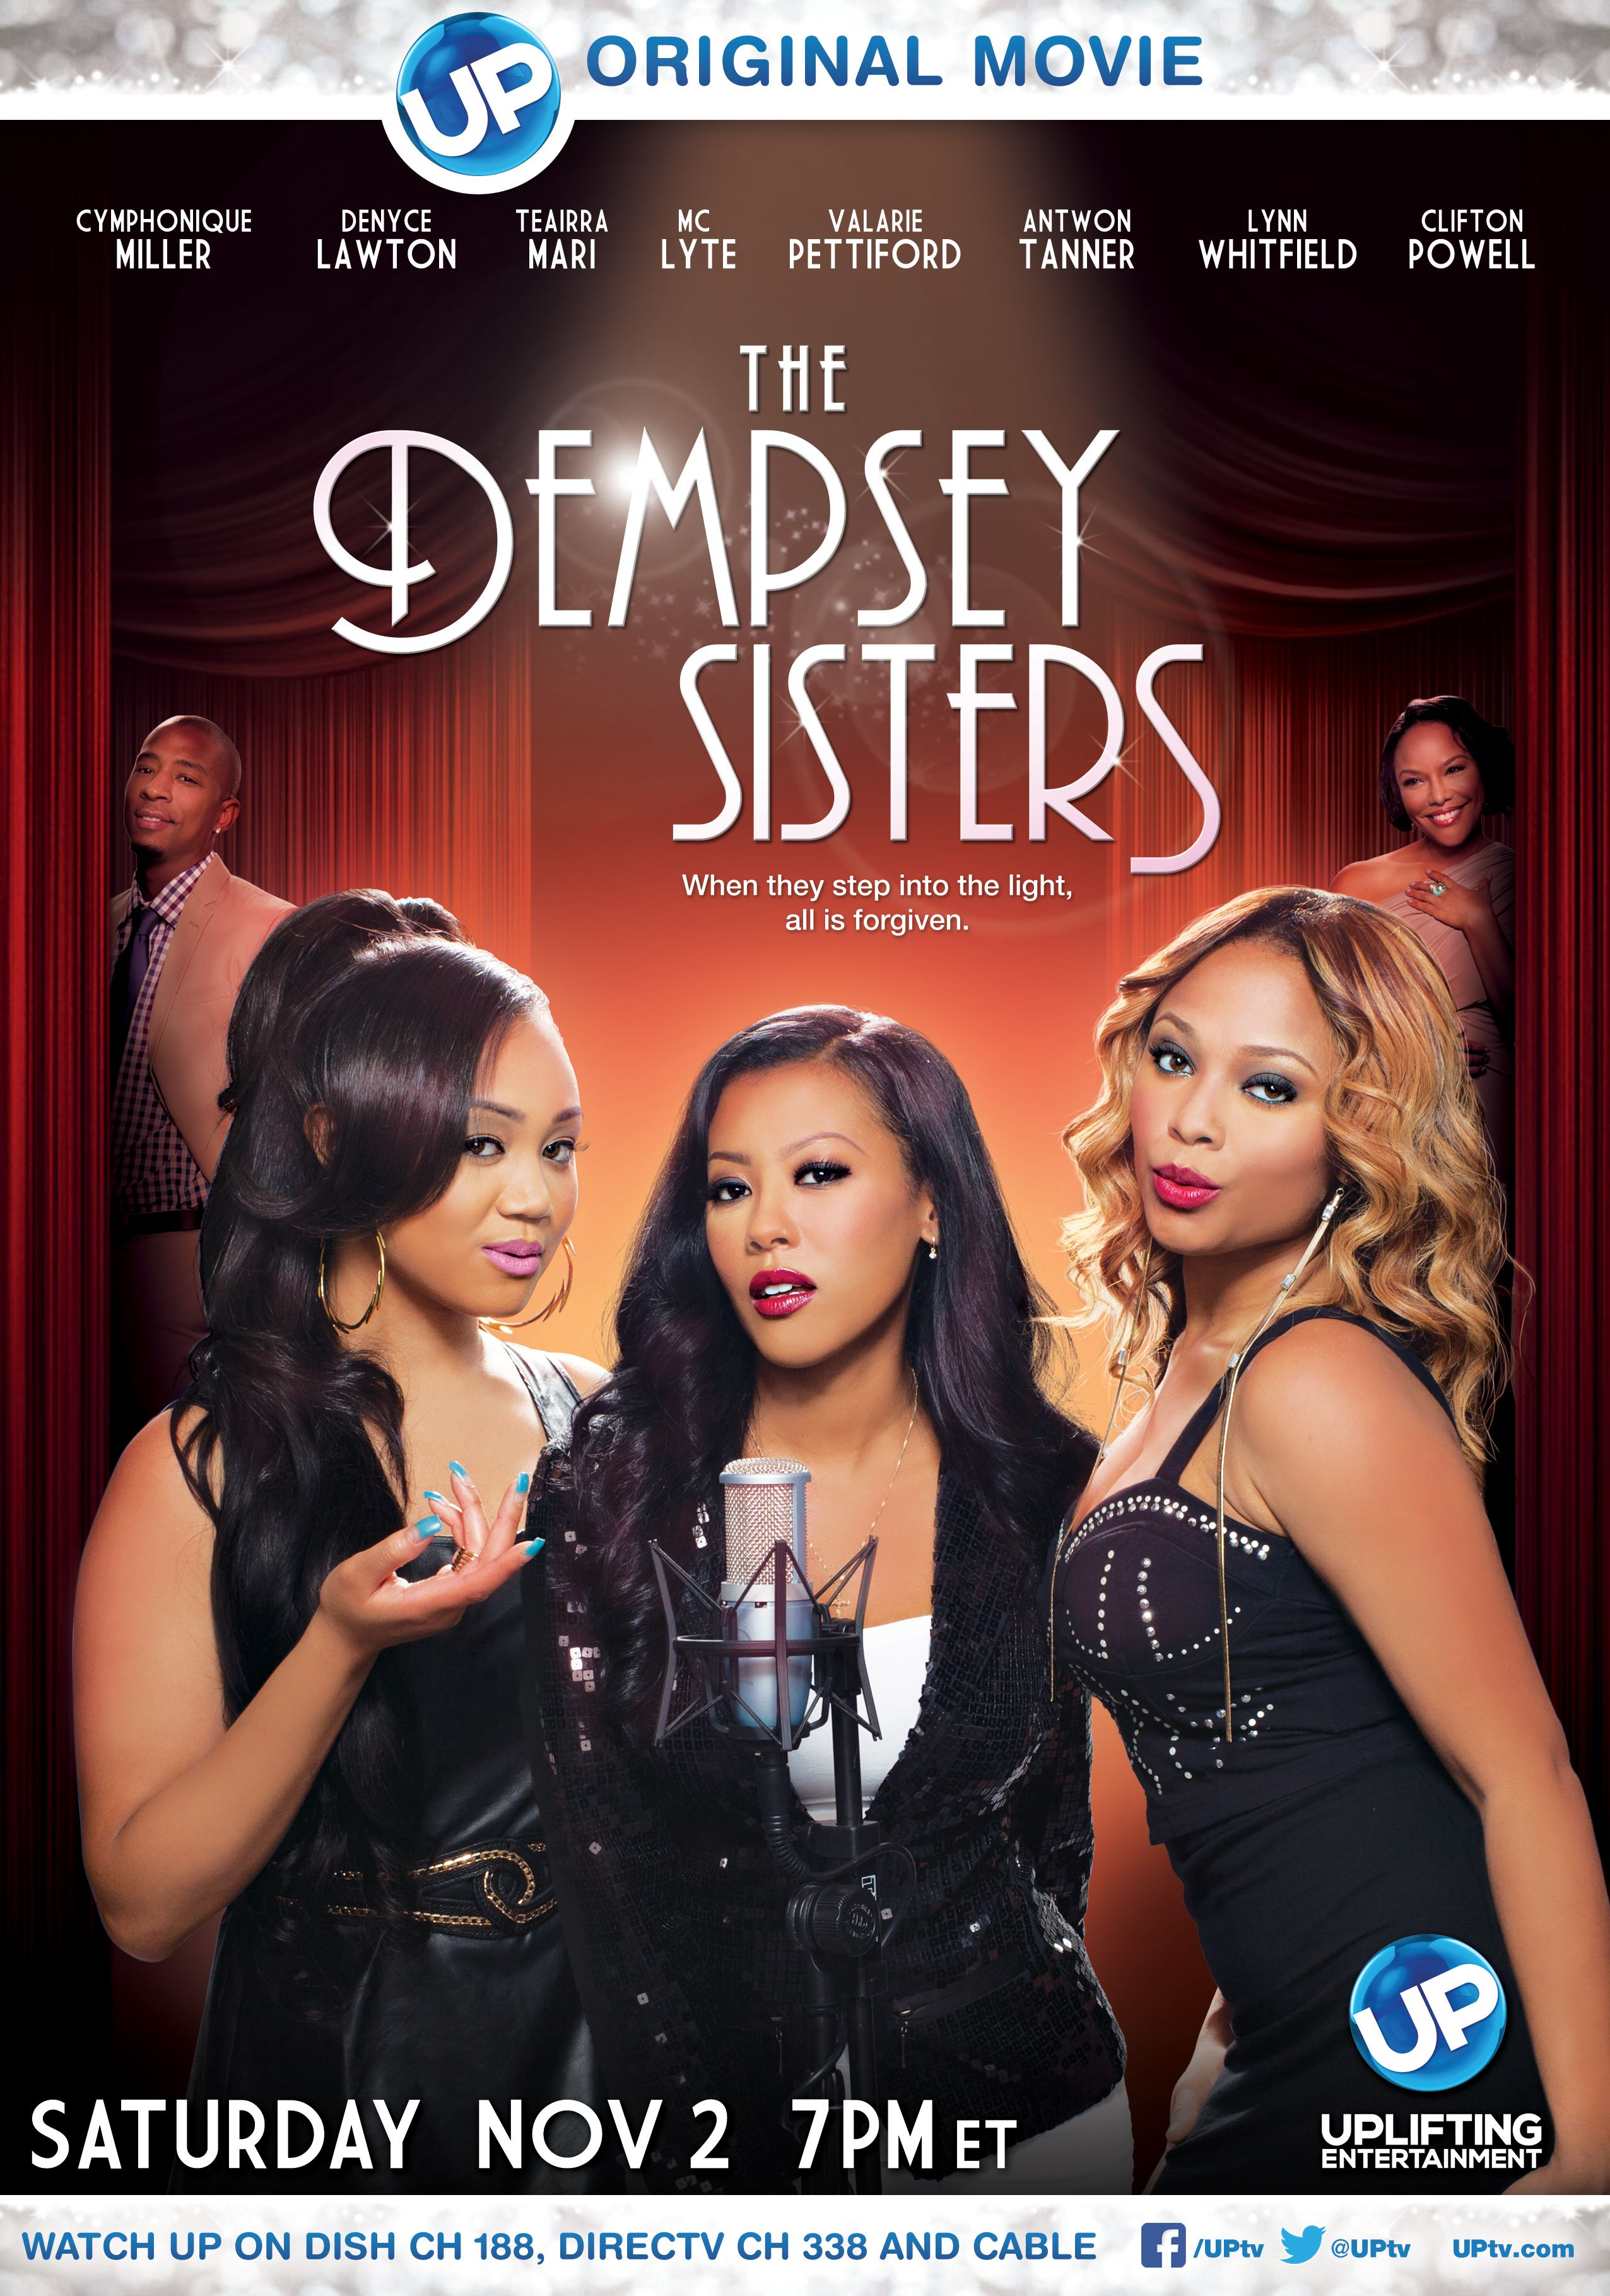 In The Dempsey Sisters, three sisters with a shared dream